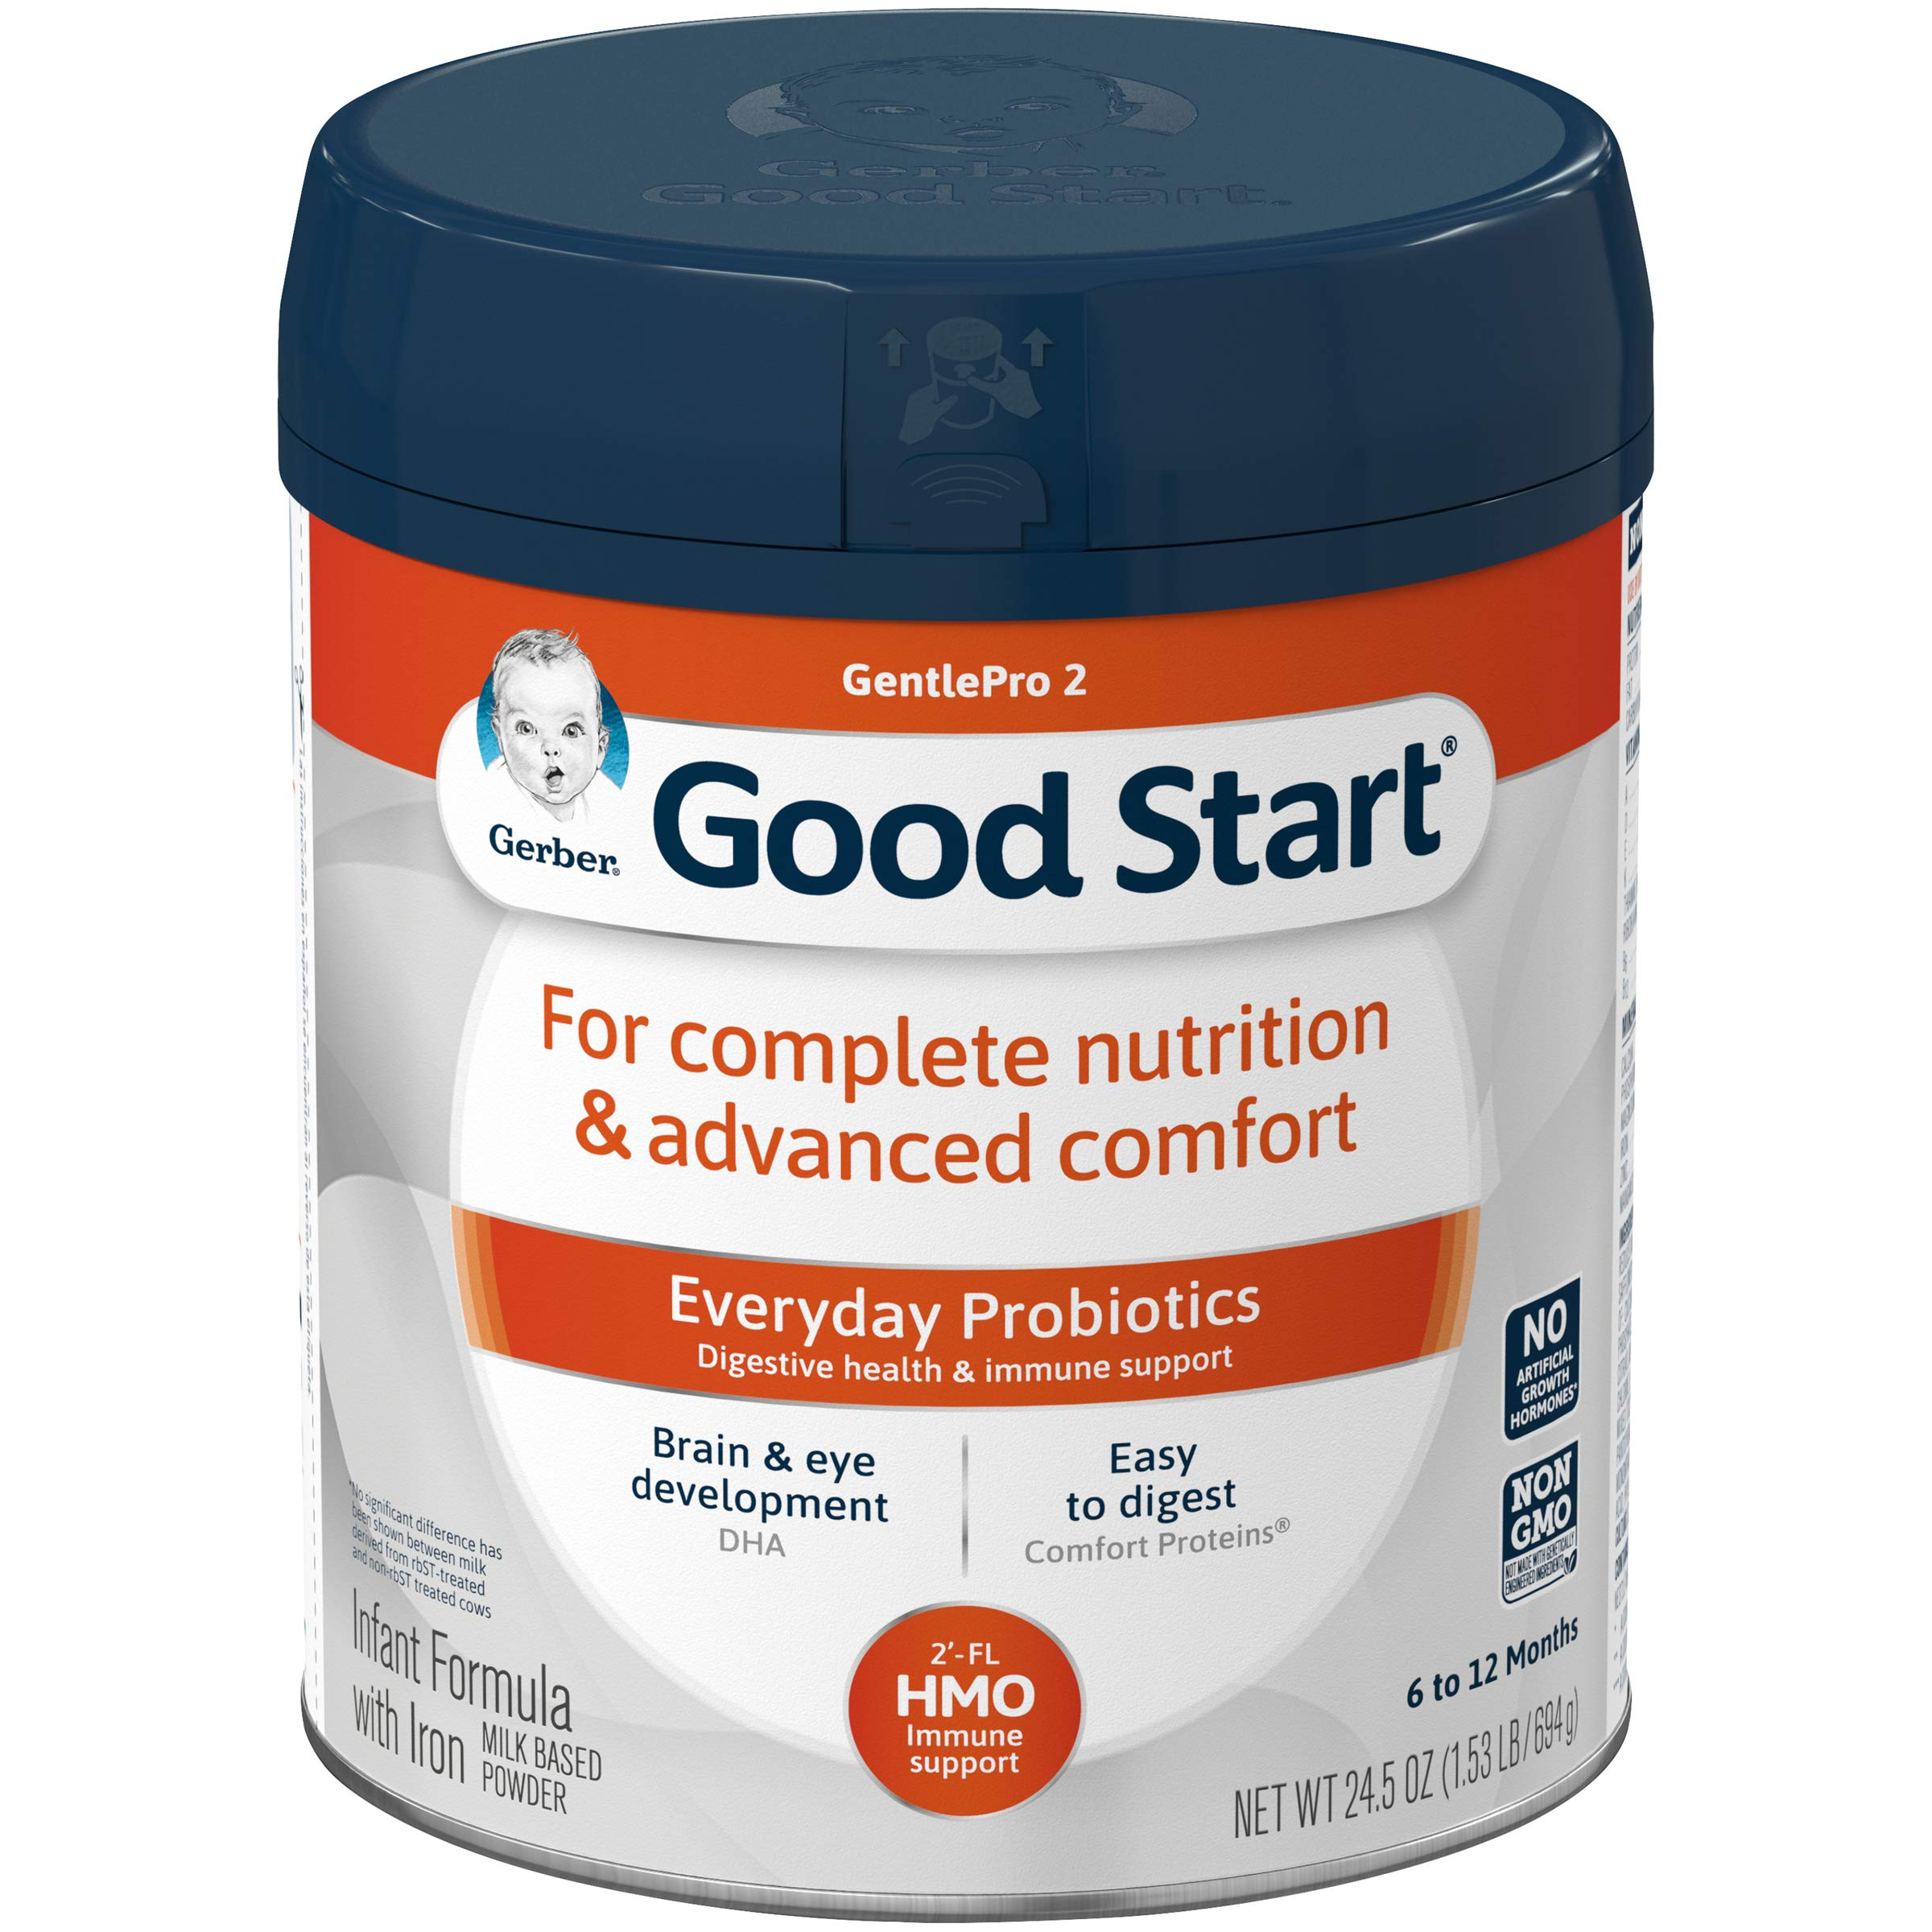 Gerber Good Start Gentle (HMO) Non-GMO Powder Infant Formula, Stage 2, 24.5 Ounces (Pack of 4) by Gerber (Image #1)